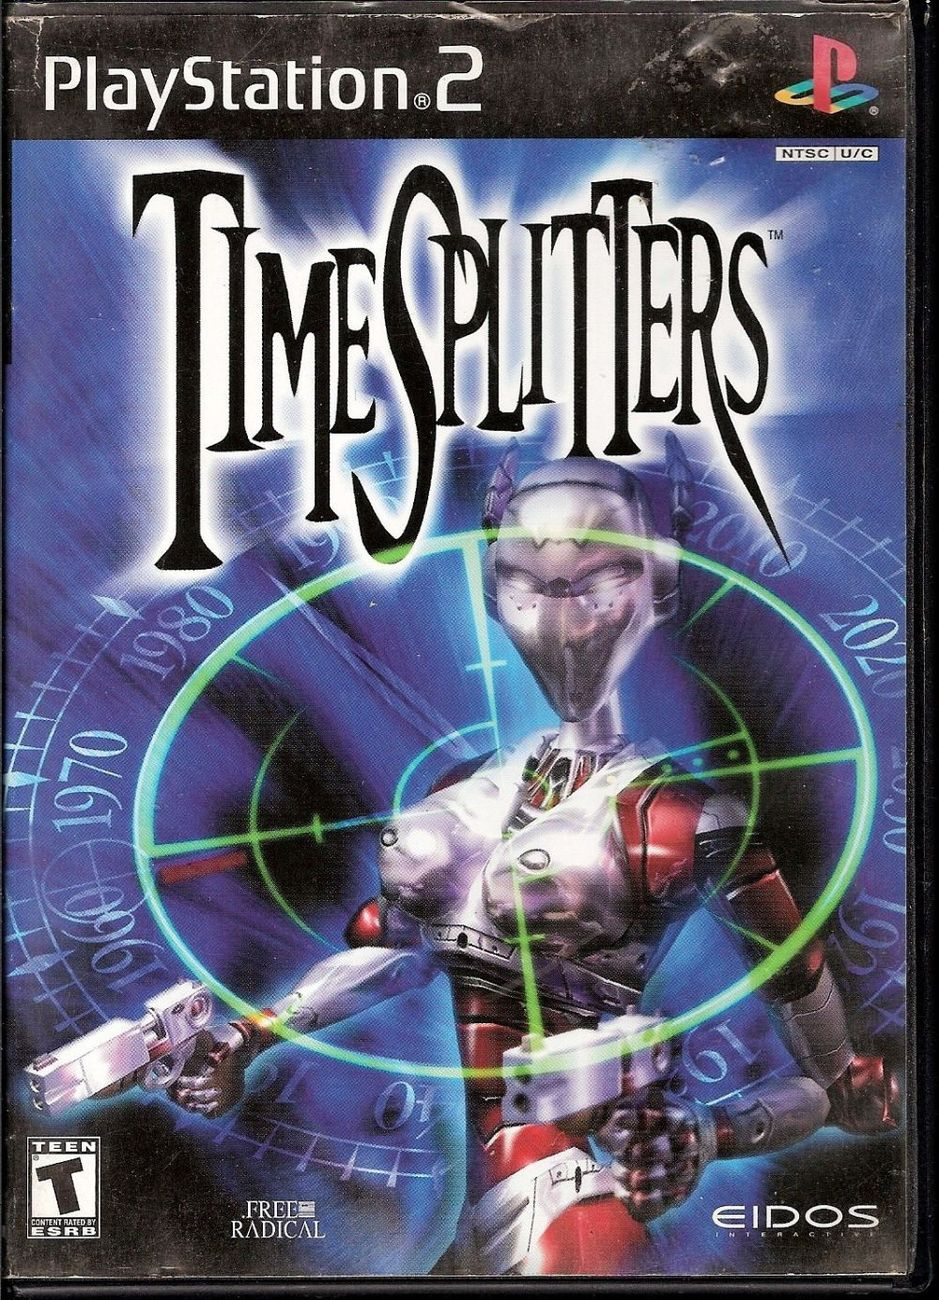 TimeSplitters EIDOS PlayStation 2 video game 2000